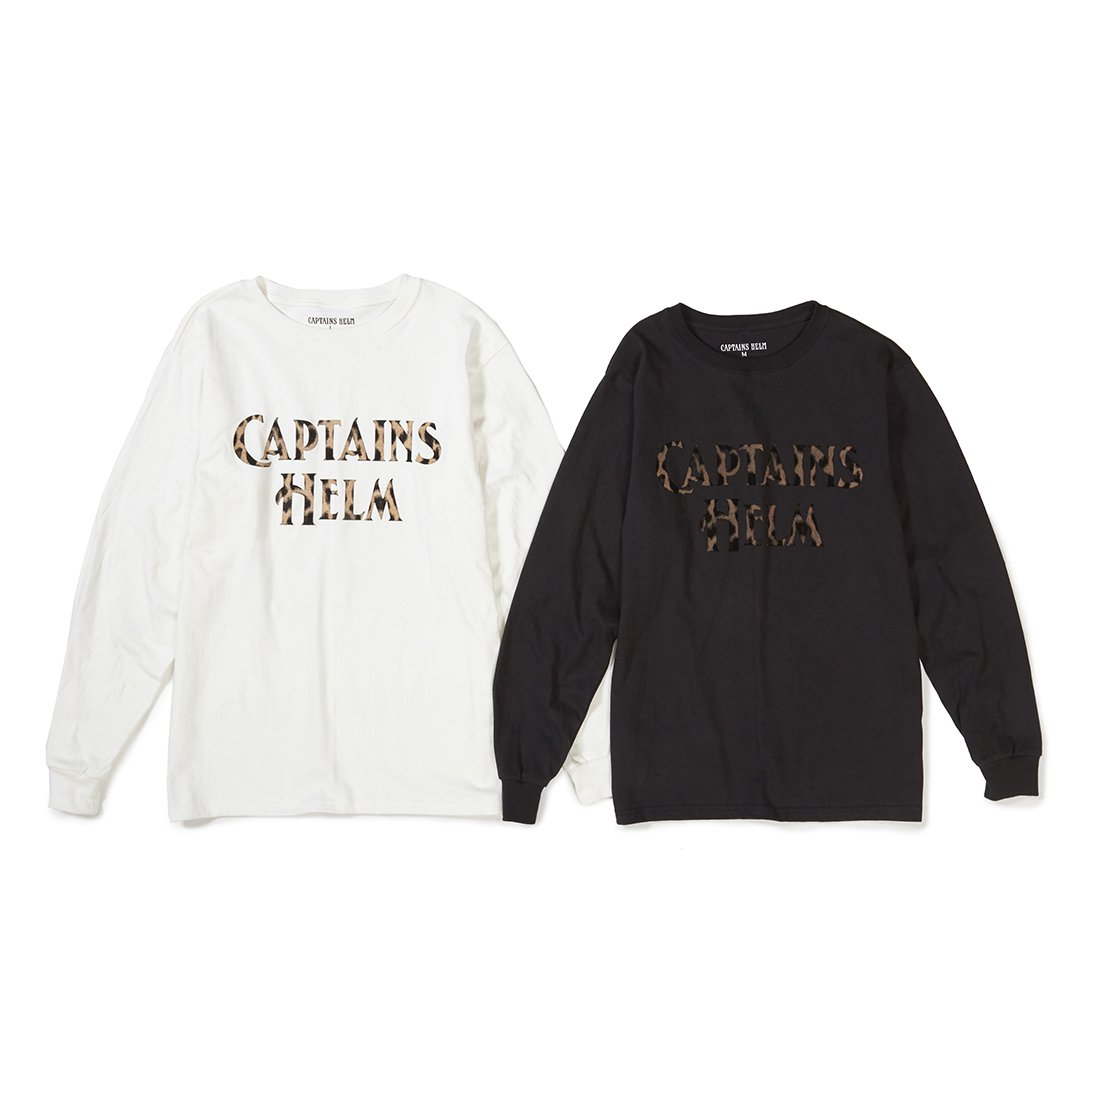 CAPTAINS HELM #LEOPARD LOGO L/S TEE